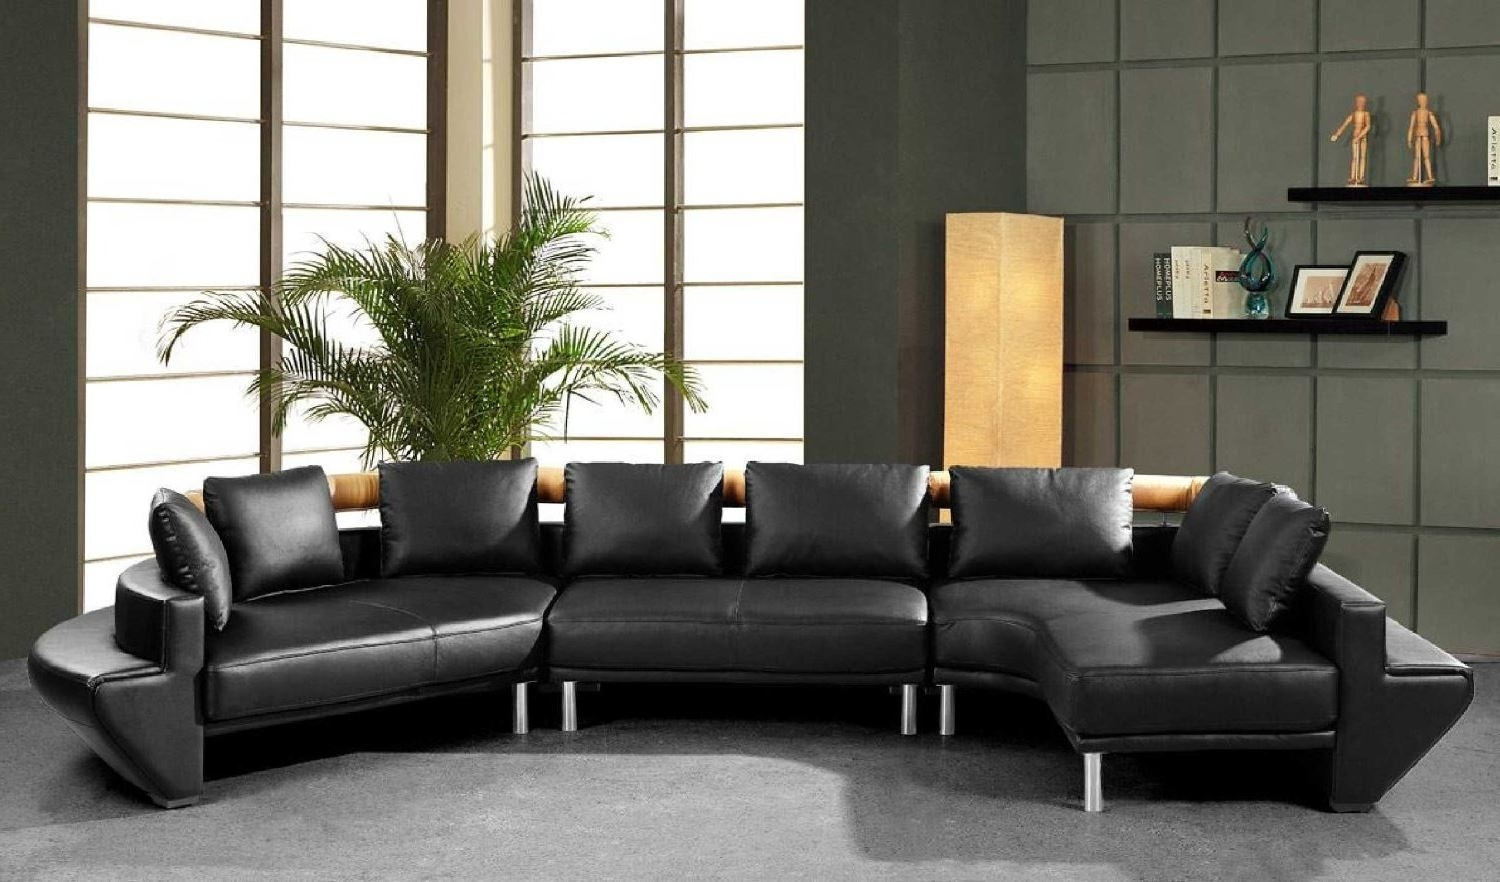 Furniture : 5060 Recliner Sectional Sofa Costco $699 Corner Couch Inside Joining Hardware Sectional Sofas (Image 3 of 10)